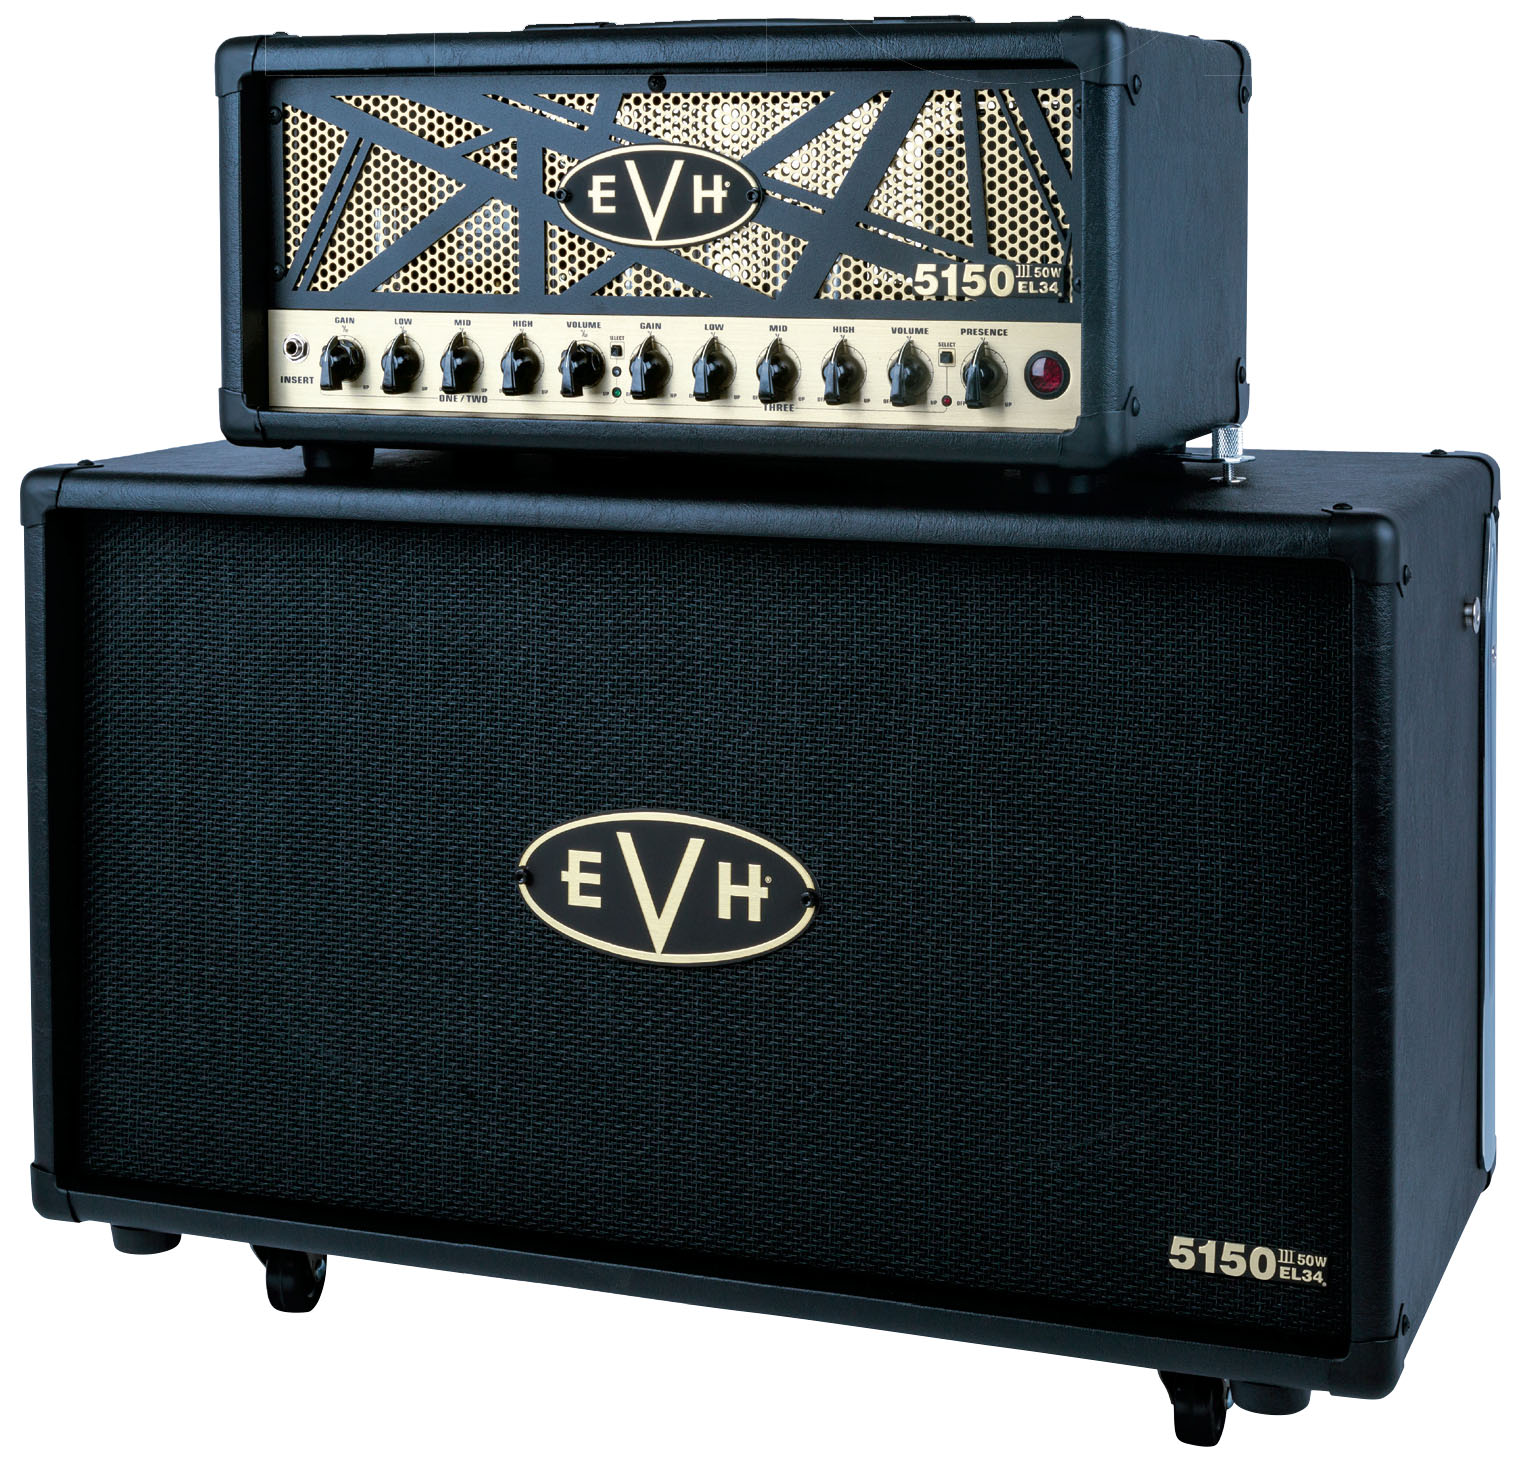 5ee1632da86 Review  EVH 5150 III 50-Watt EL34 Head